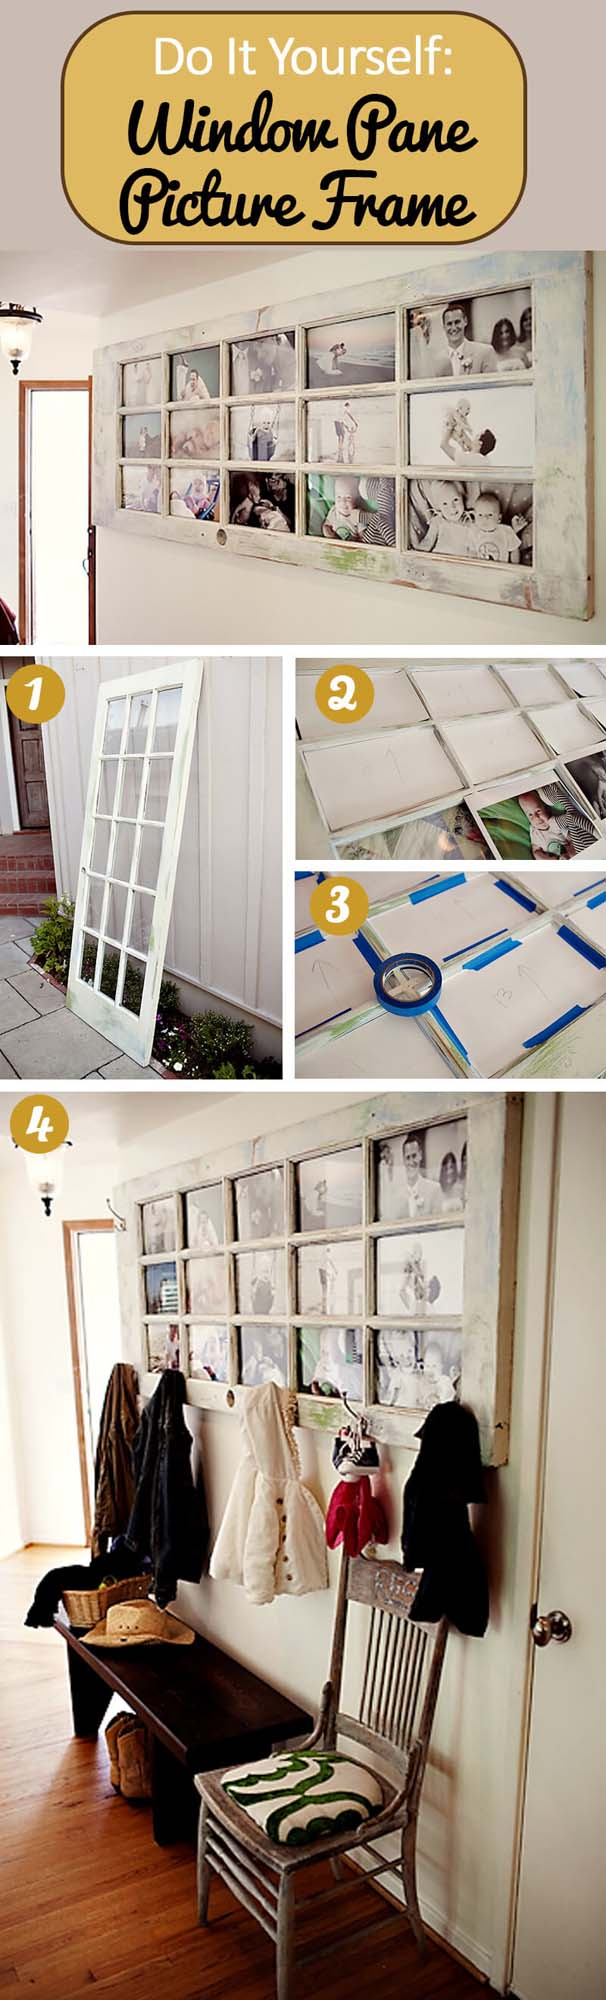 Old Doors Make the Best Picture Frames #diy #weekendproject #decorhomeideas